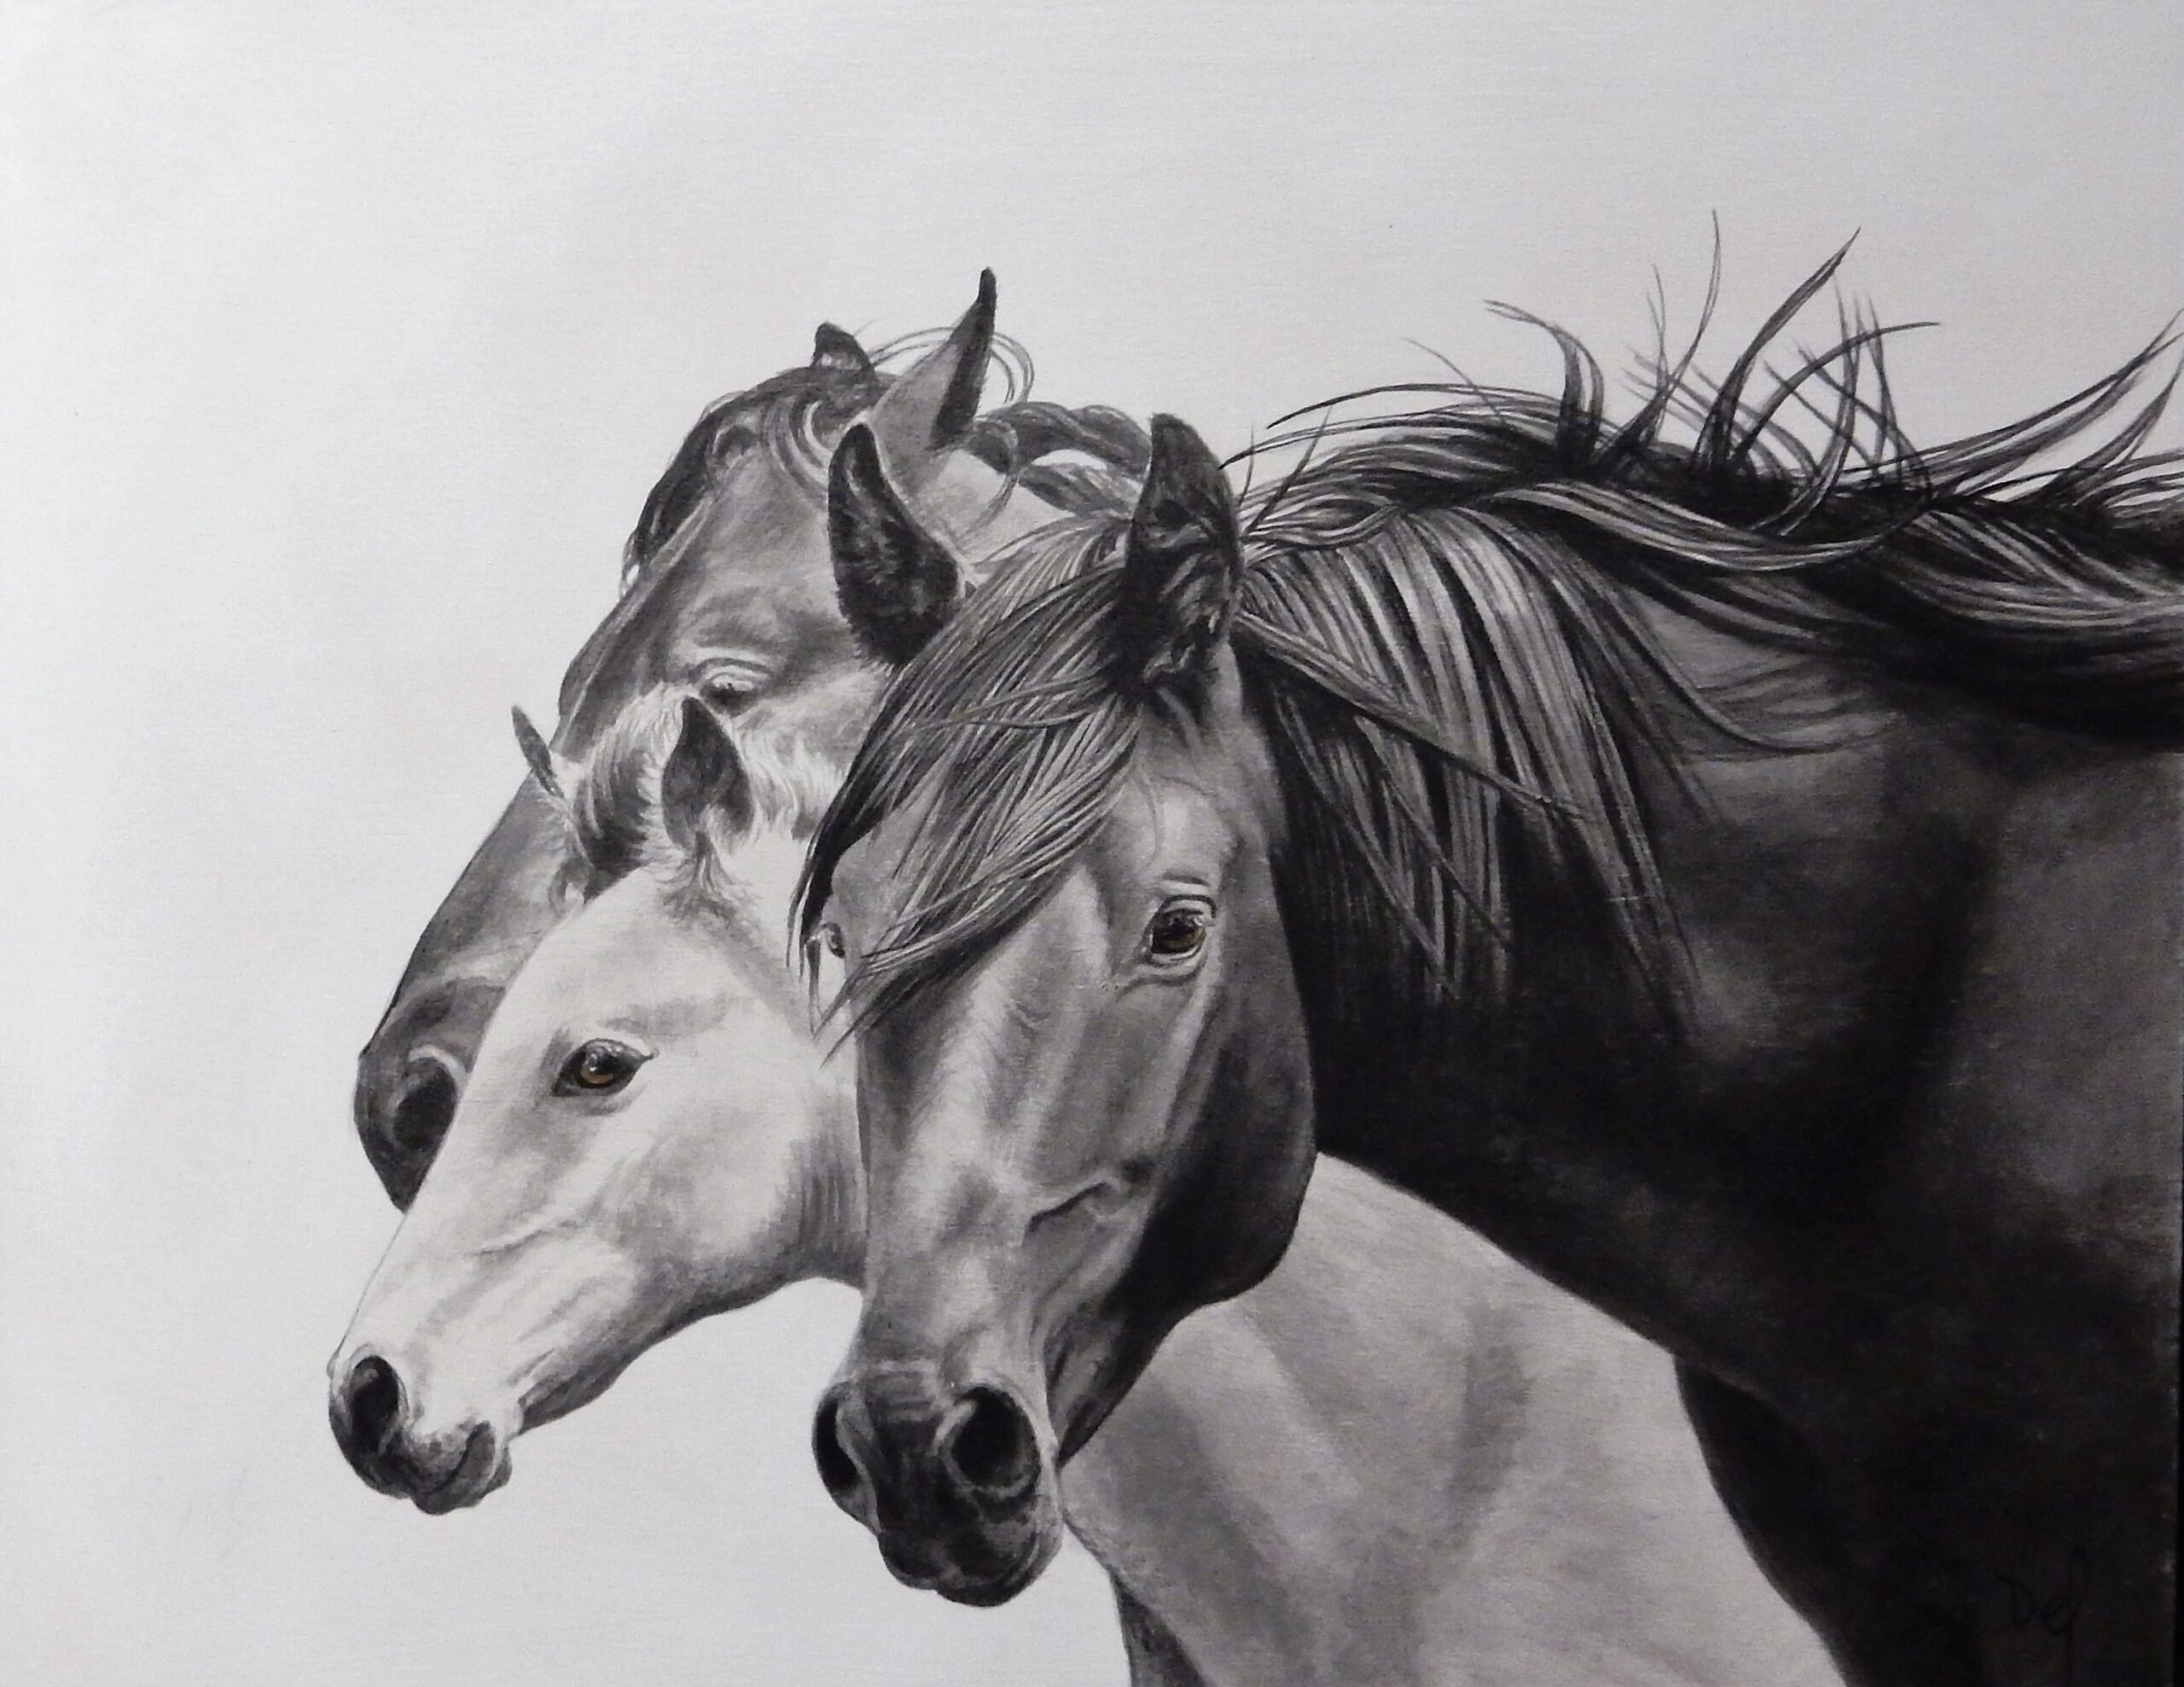 Painting of a horse by Delvea Tuff, titled Bonds.